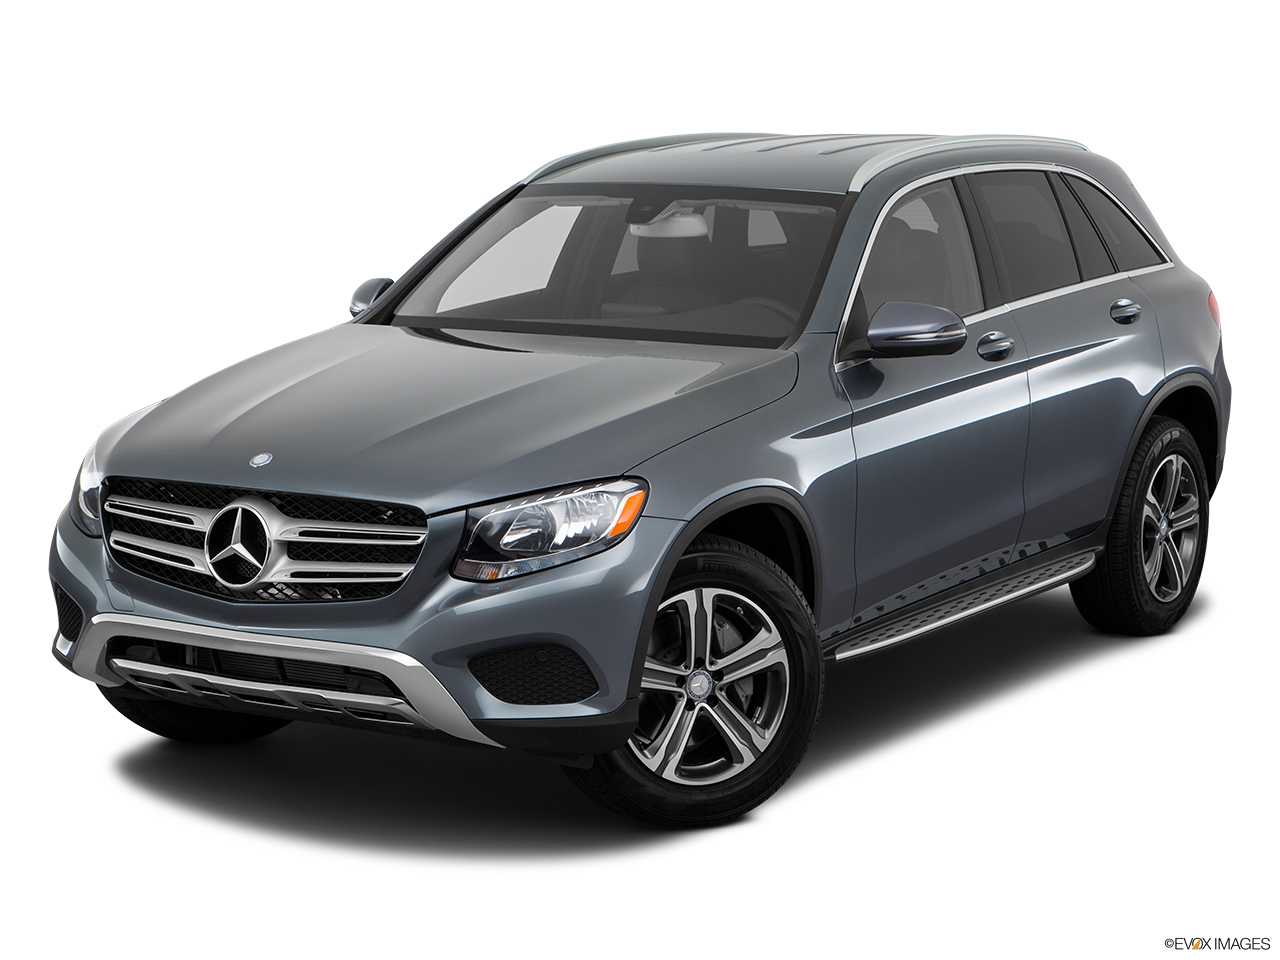 Mercedes benz glc class price in uae new mercedes benz for New mercedes benz price